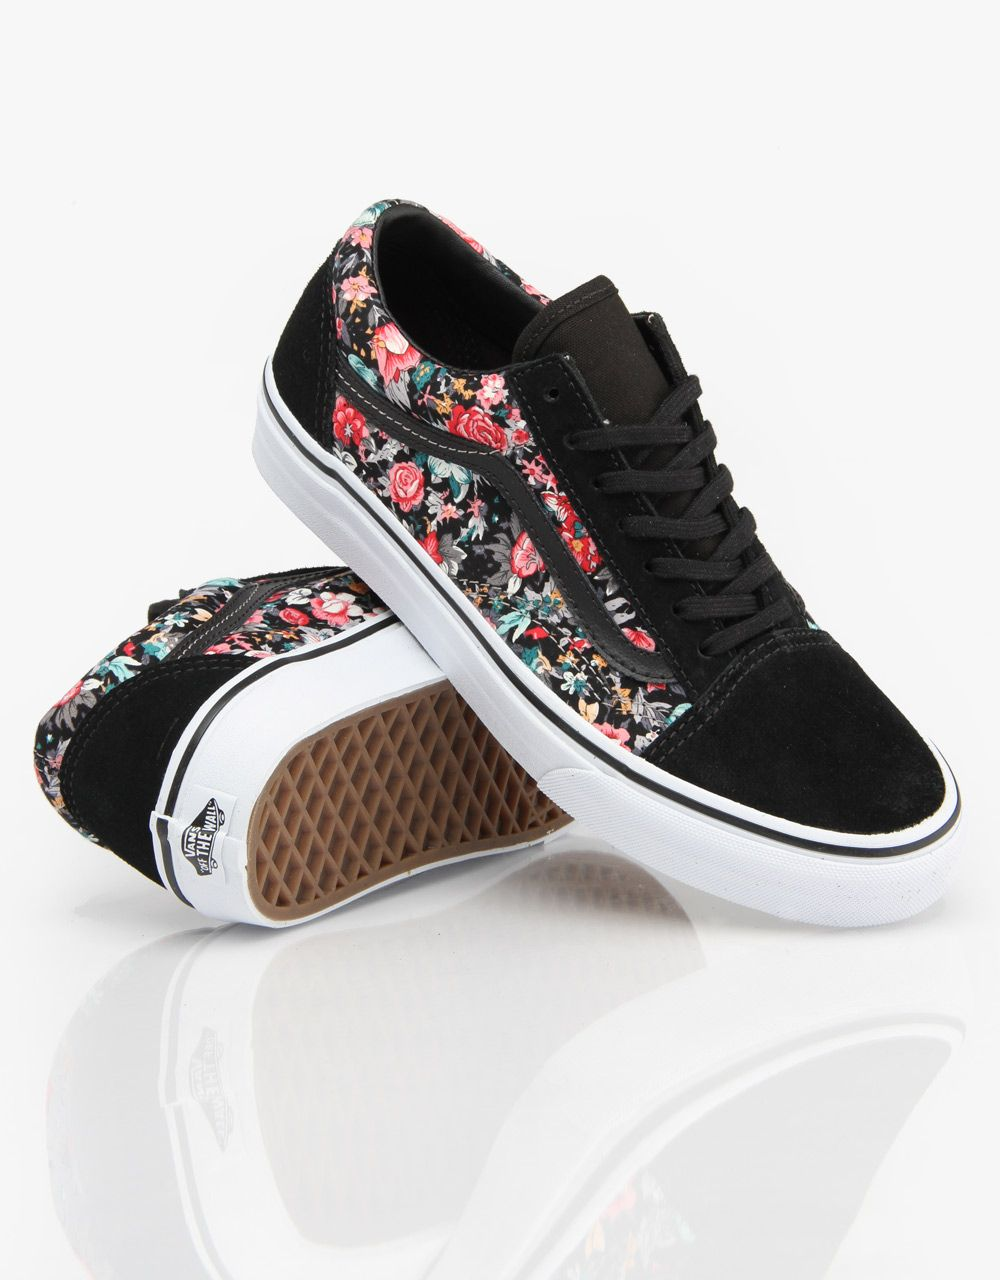 eb51045d39bfbc Vans Old Skool Girls Skate Shoes - Multi Floral Black True White -  RouteOne.co.uk